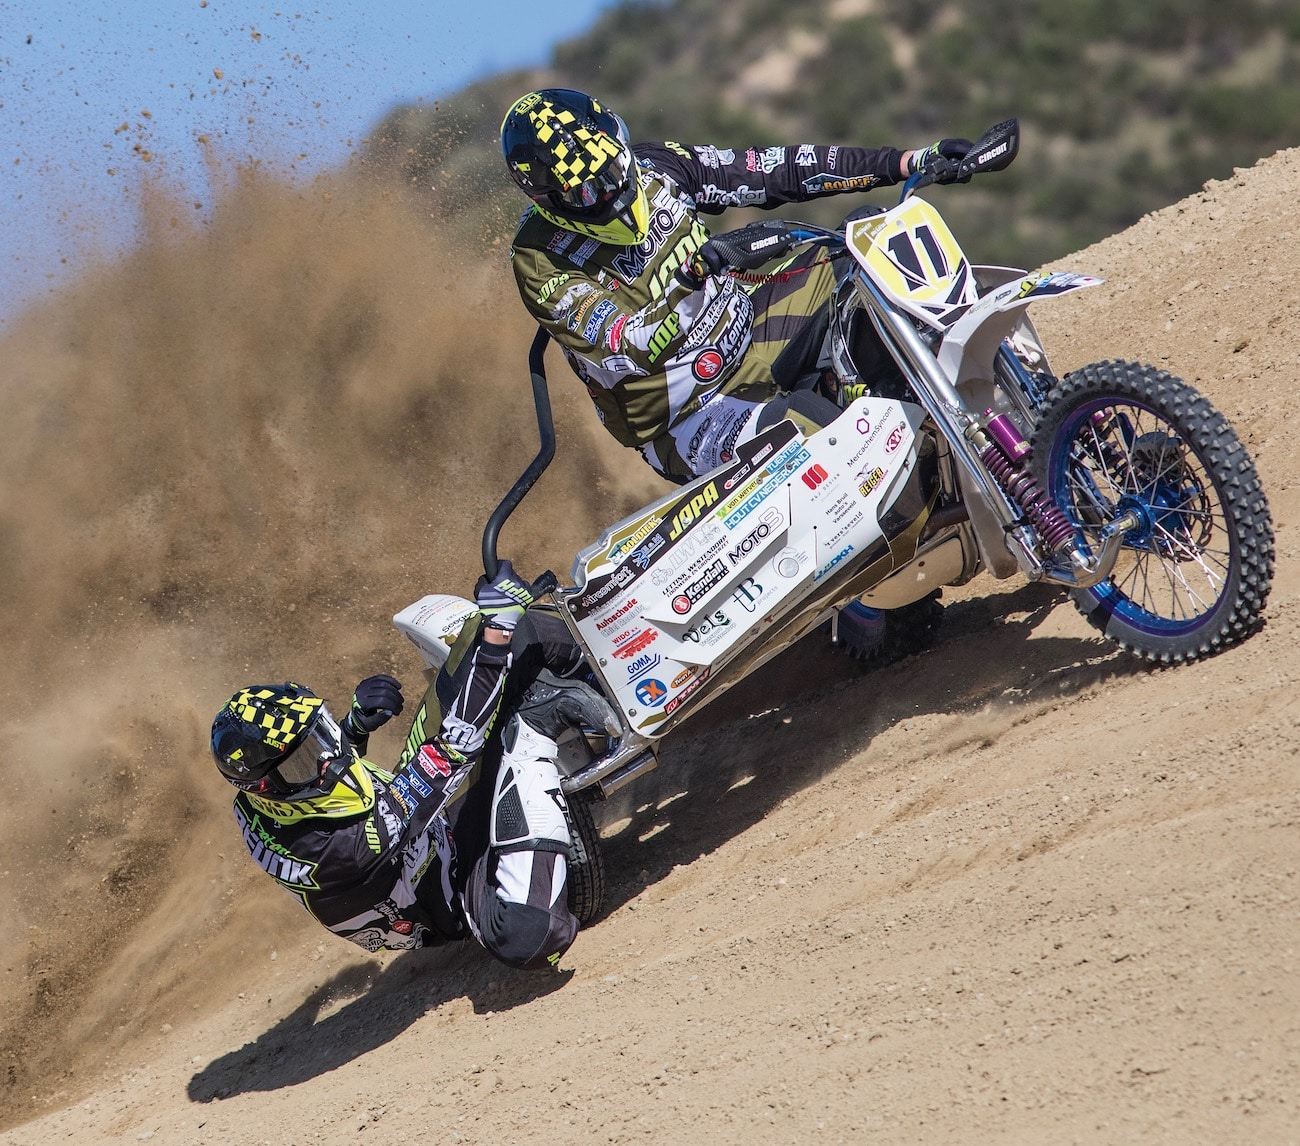 Sidecar Motocross Most Underrated Motorsport In The World Motocross Action Magazine